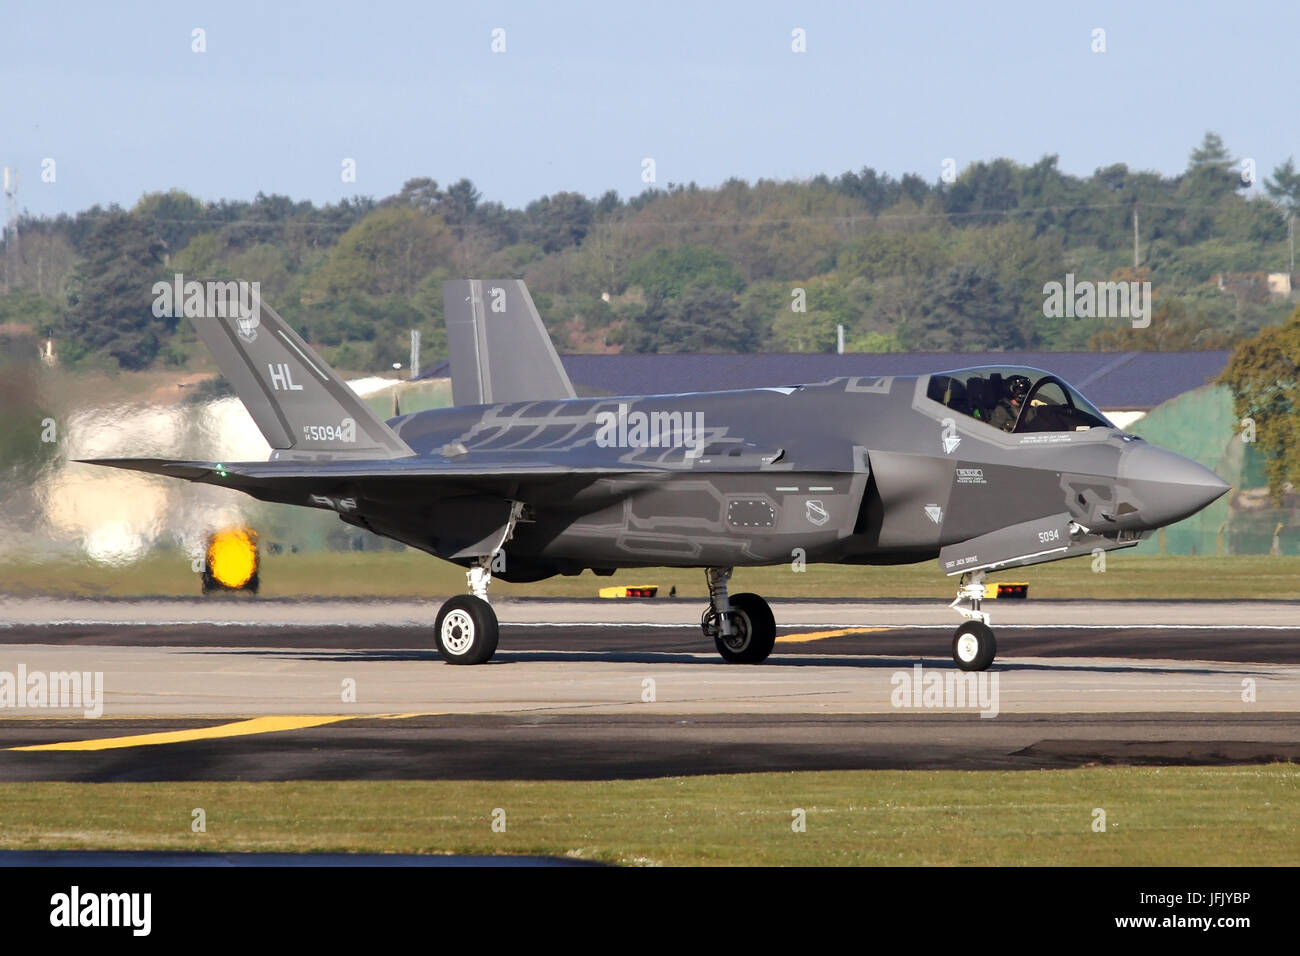 Two F-35A's from the USAF's first overseas deployment departing RAF Lakenheath for Bulgaria for a days deployment. - Stock Image